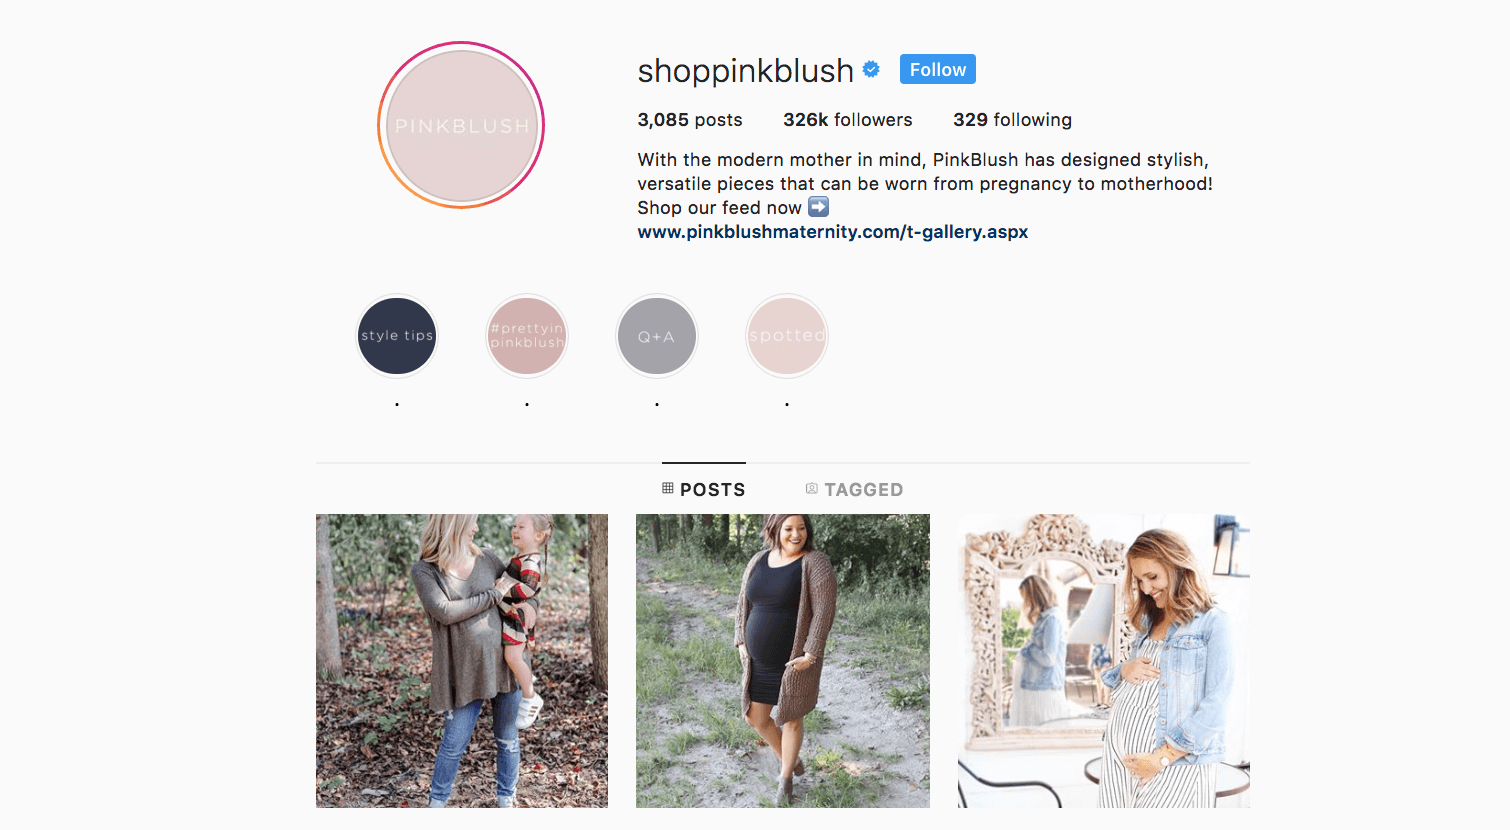 shoppinkblush verified on instagram